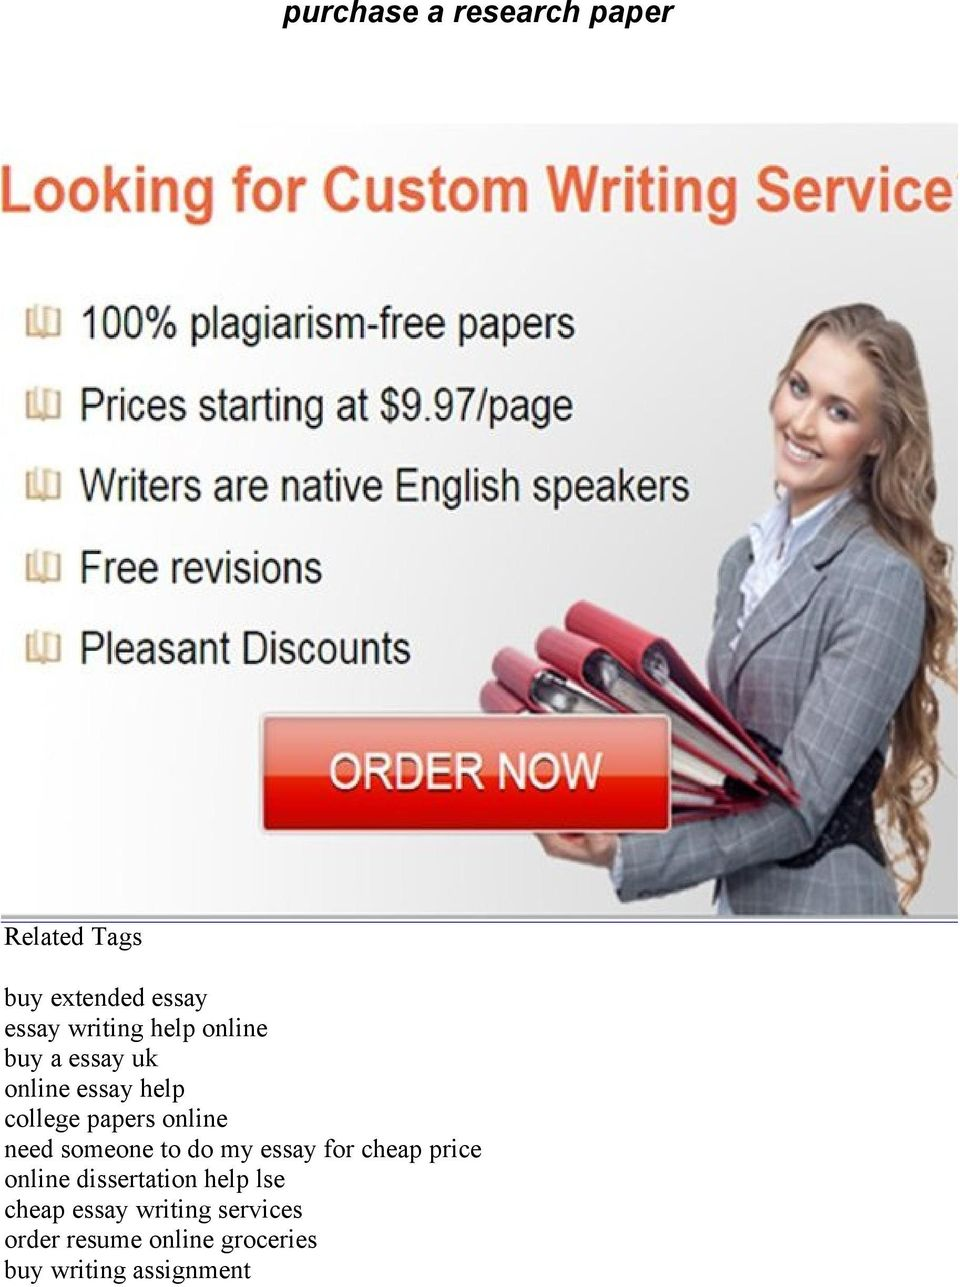 someone to do my essay for cheap price online dissertation help lse cheap